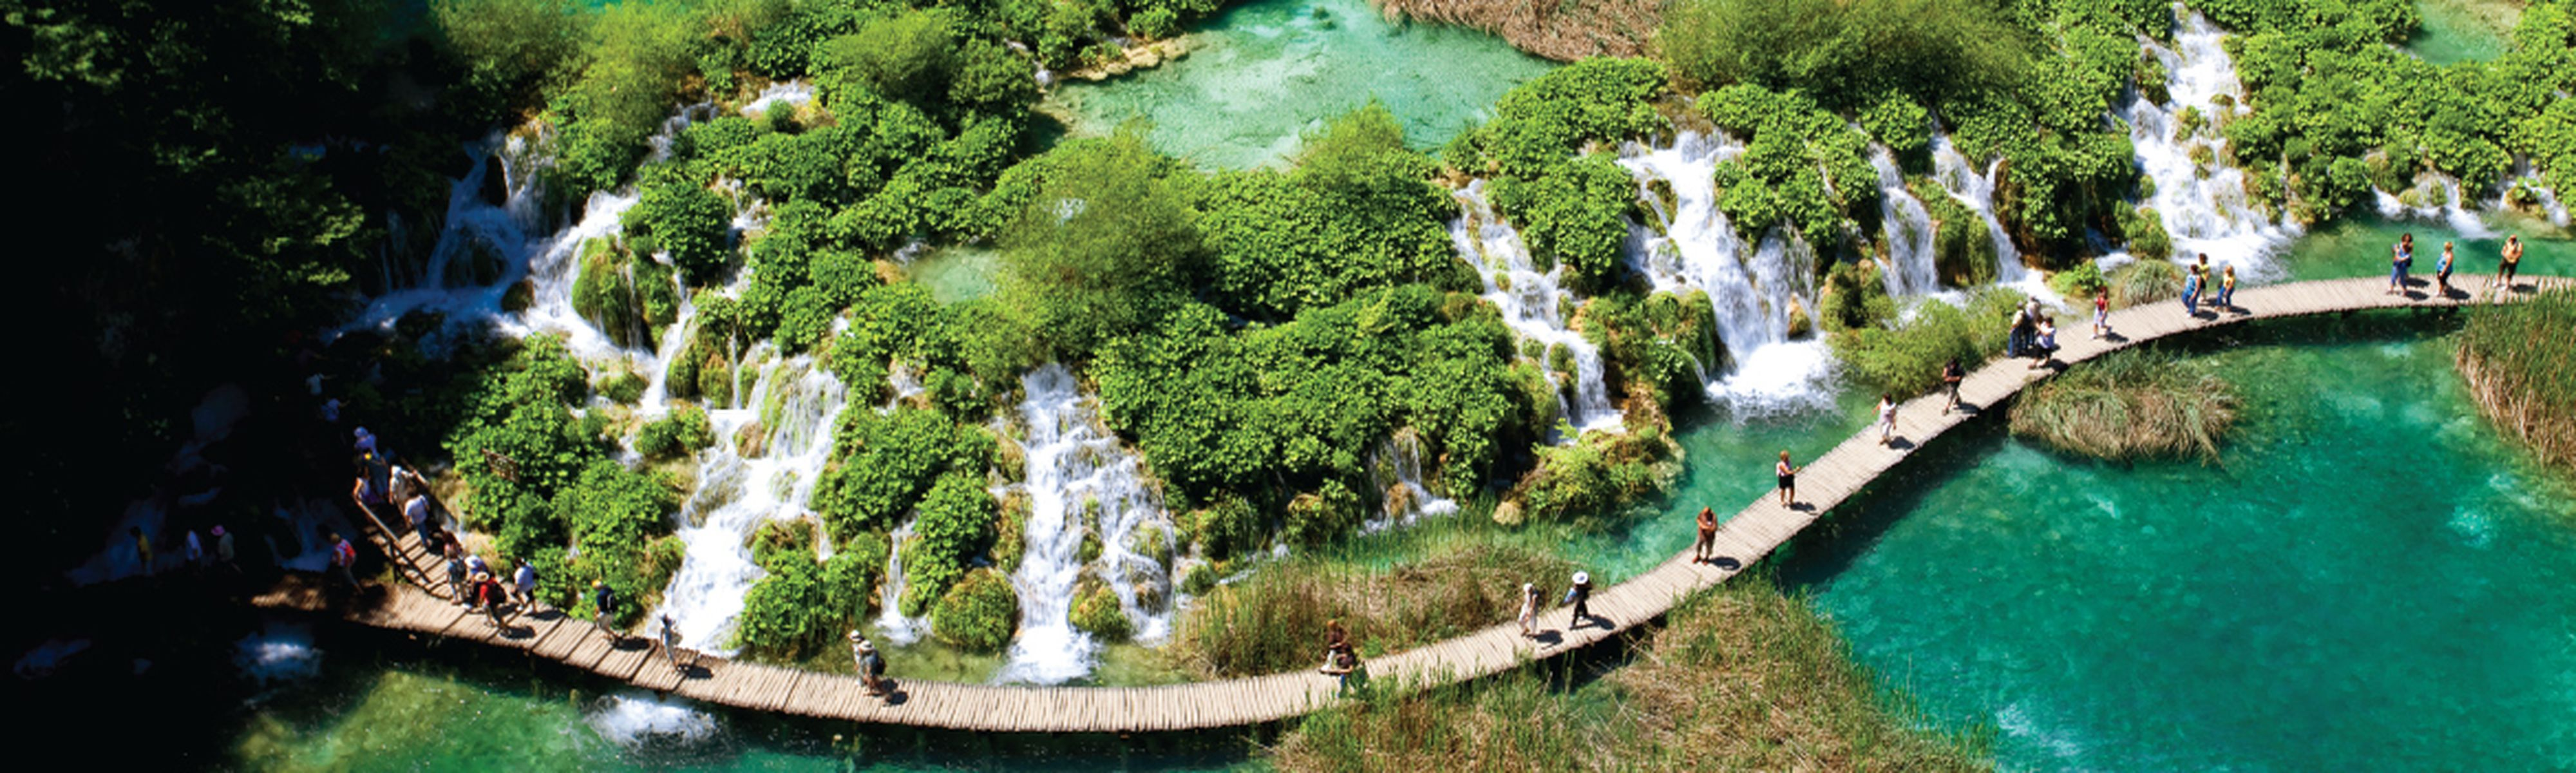 Birds eye view of people walking on bridge in Plitvice Lakes National Park in Croatia